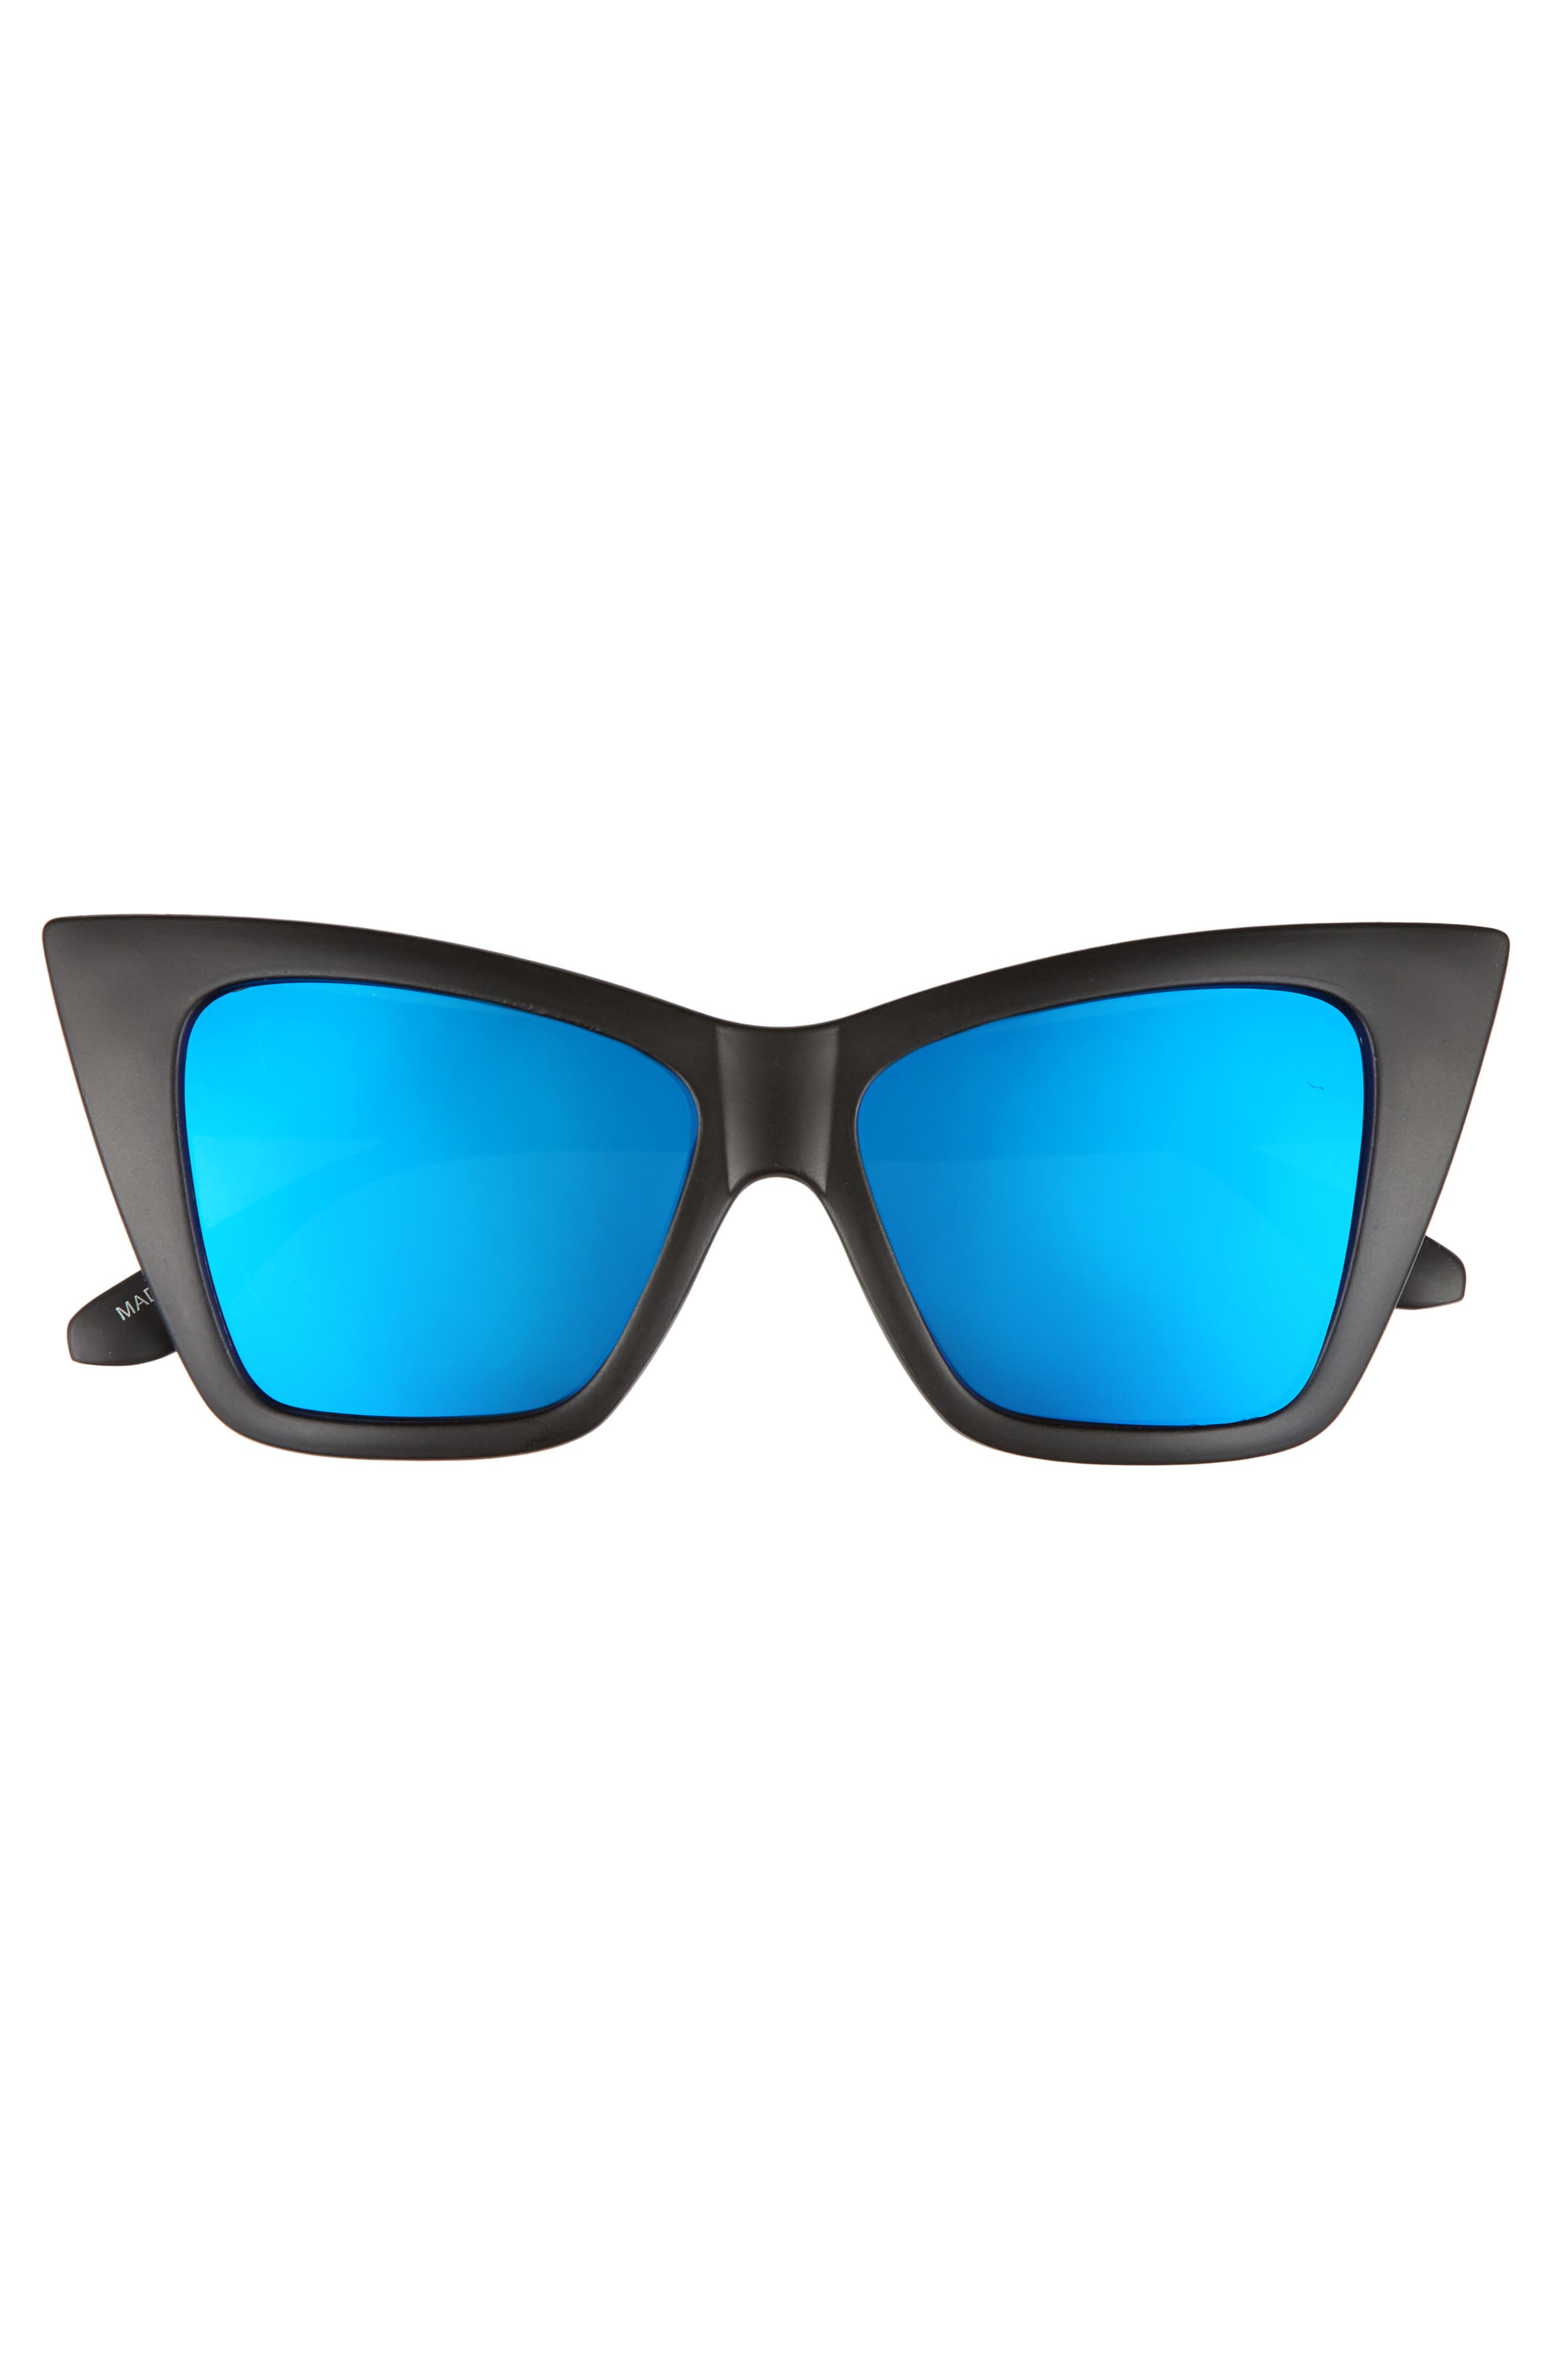 66mm Oversize Cat Eye Sunglasses,                             Alternate thumbnail 3, color,                             001